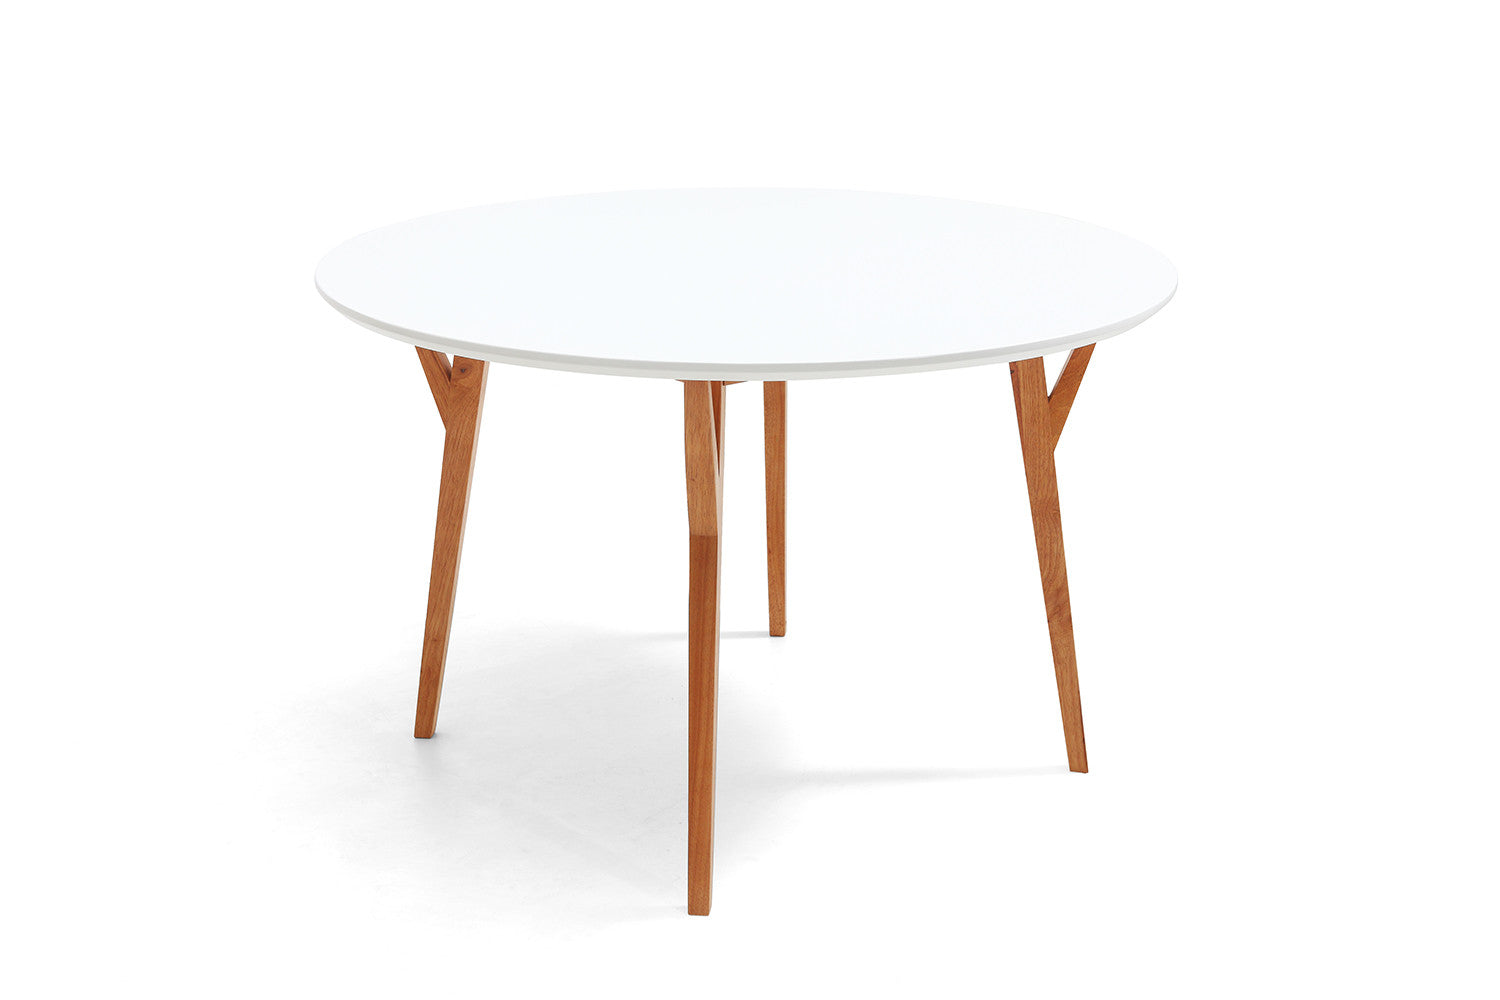 Table de salle manger ronde design scandinave moesa for Table a manger bois design